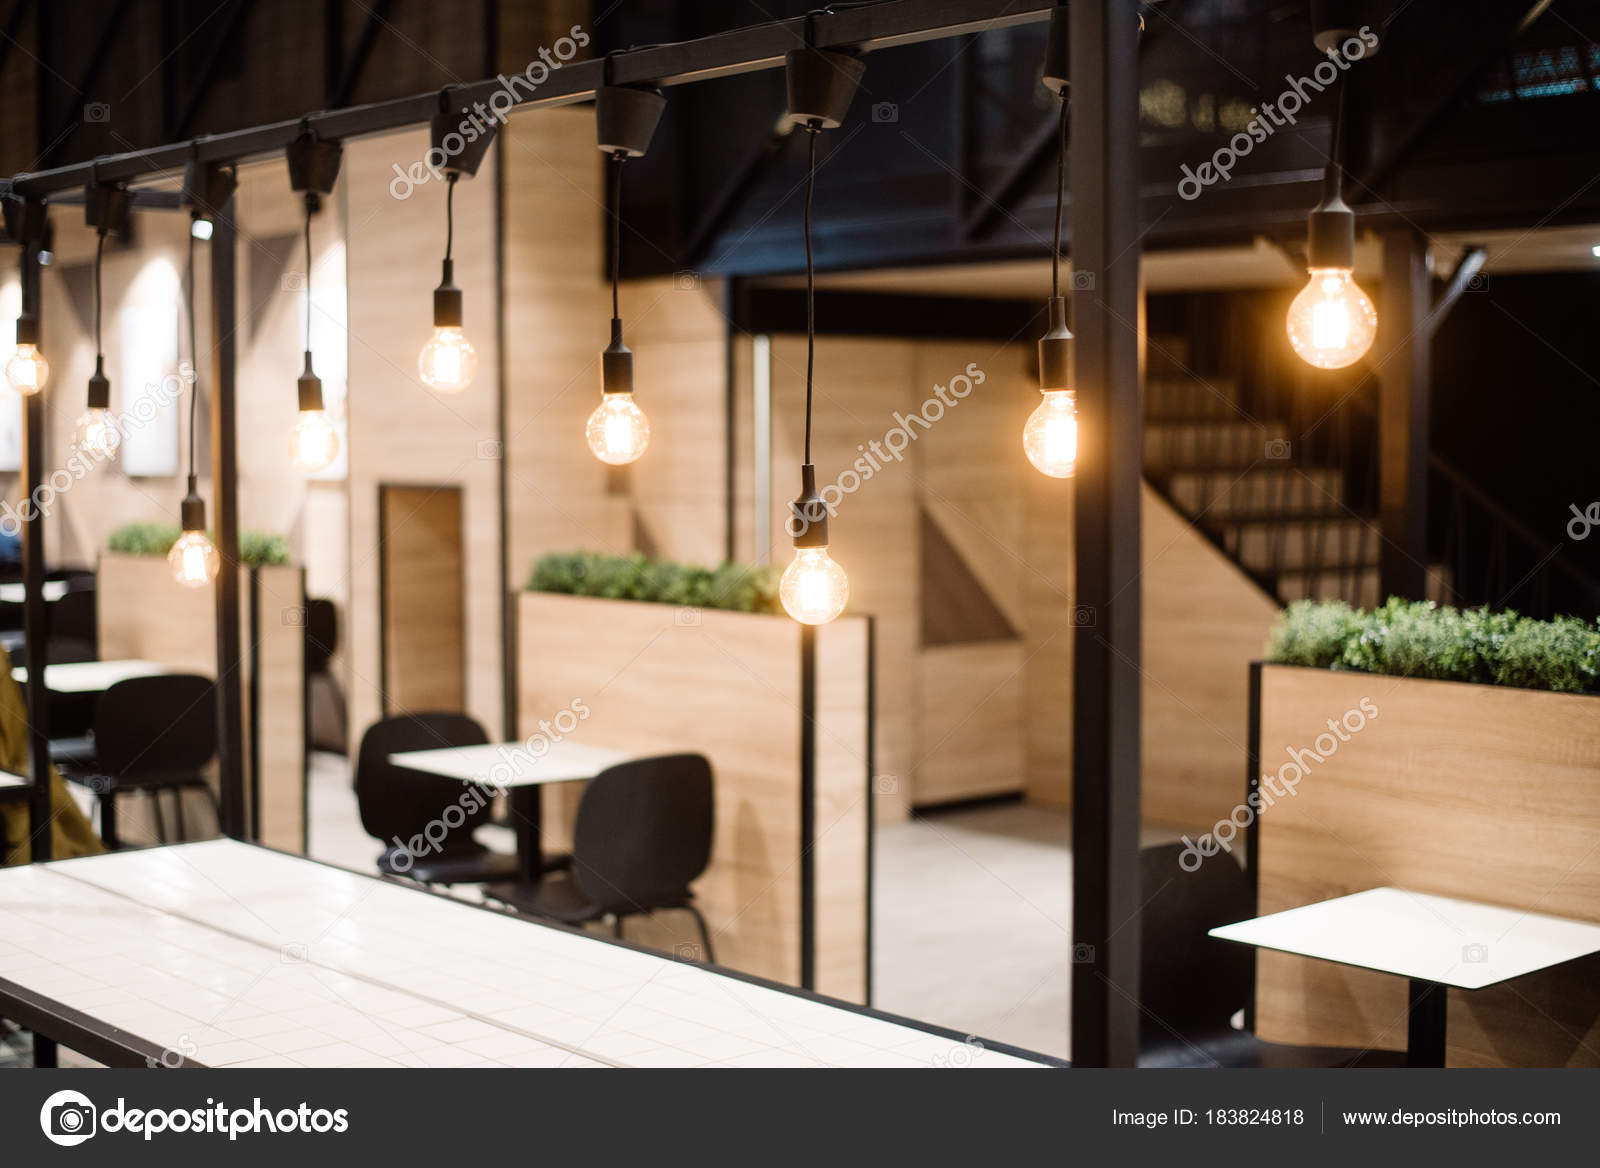 Rustic Stylish Interior Of A Cozy Restaurant Or Cafe Stock Photo C Pogrig001 Gmail Com 183824818